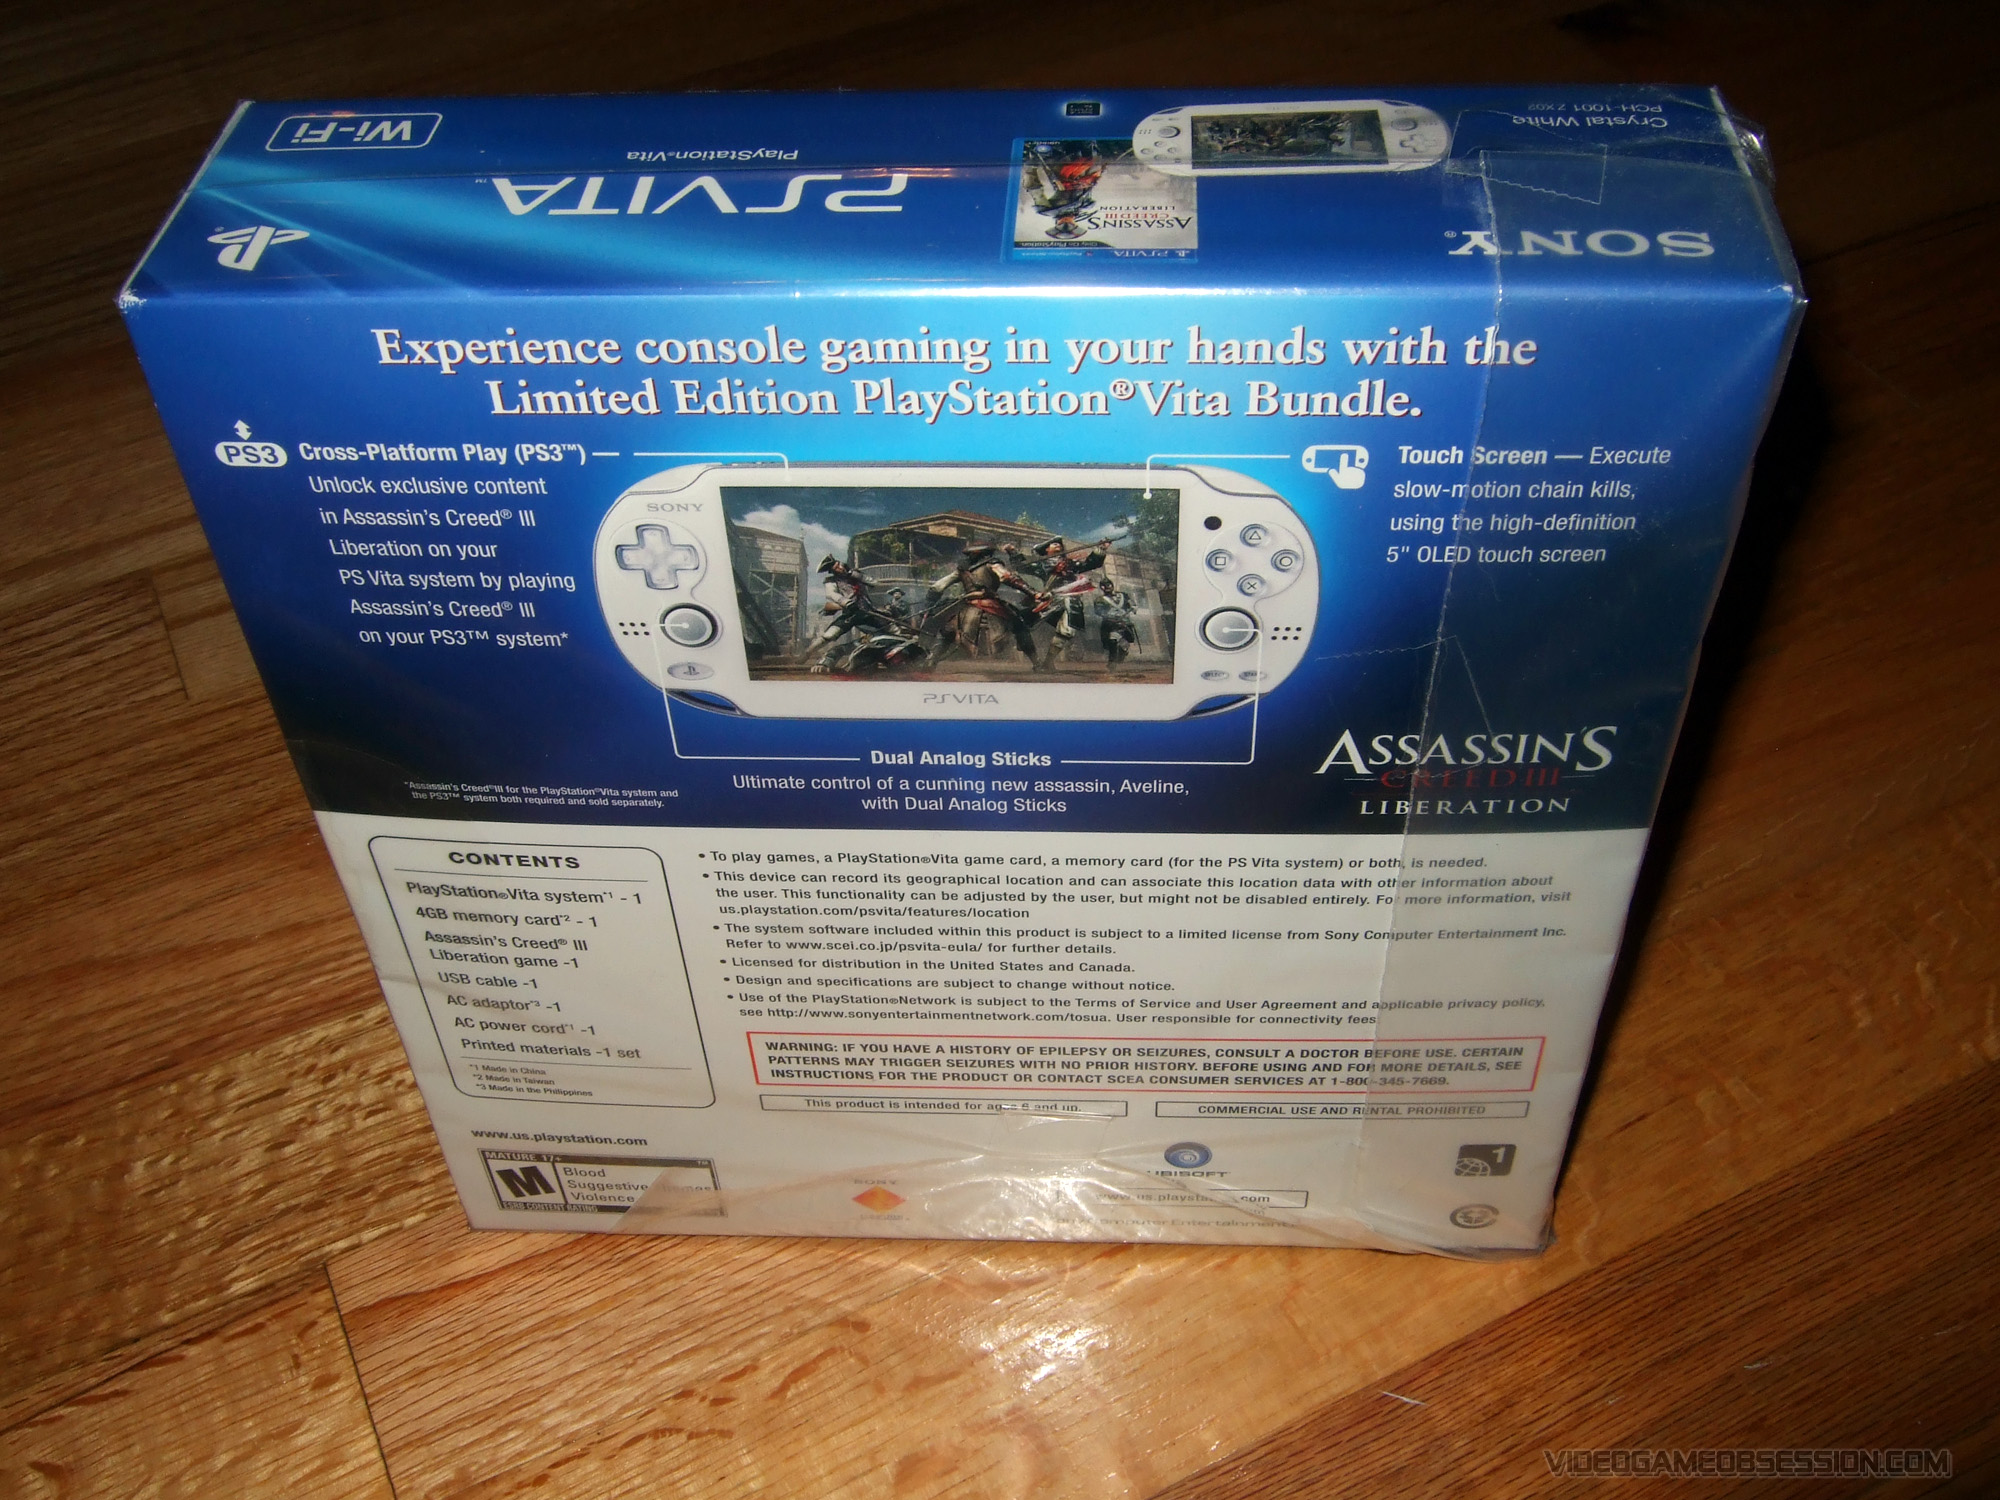 Playstation Vita Tv Hardware Video Game Obsession C Cystal Case Ps Hori Silicone Protector Screen Protective Filter Pdp Psvita Custom Crystal